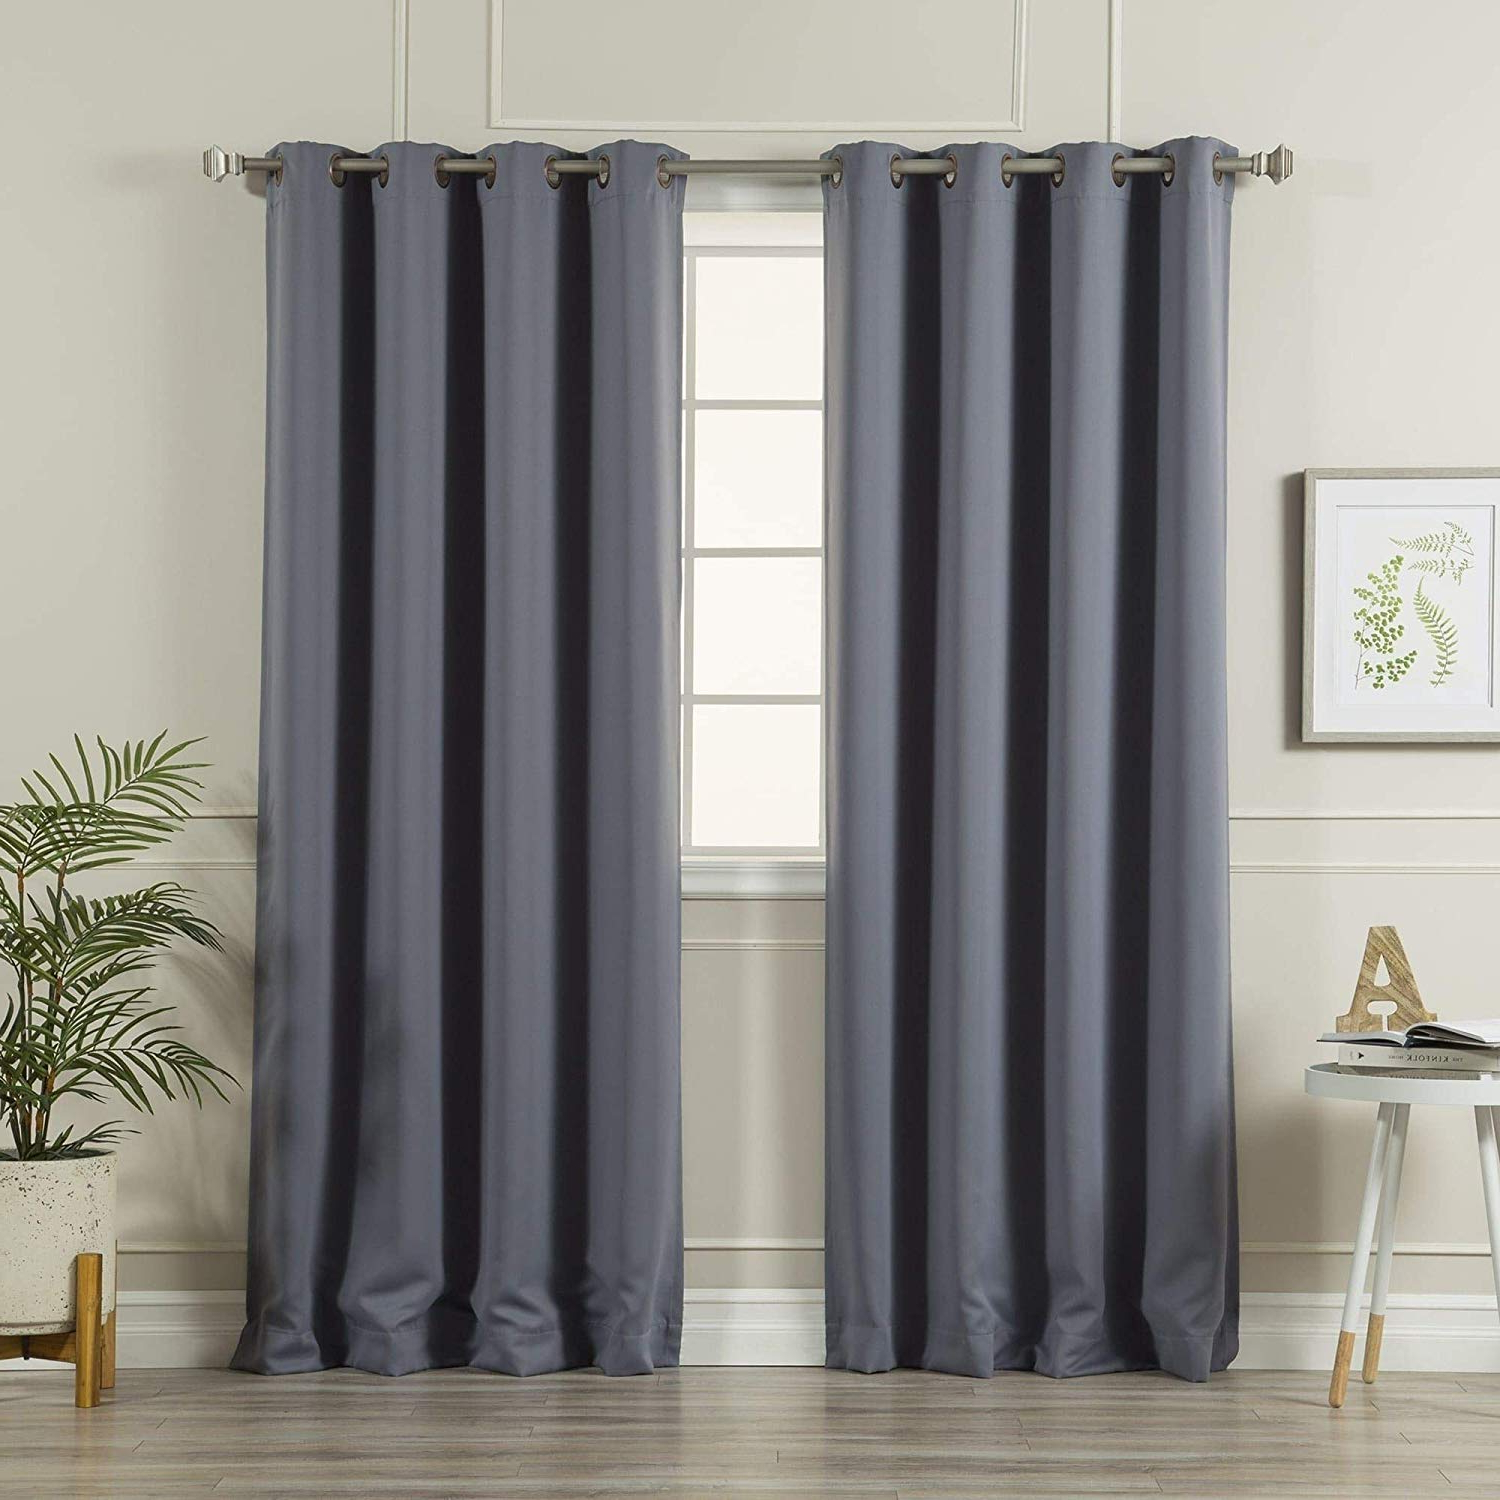 Antique Silver Grommet Top Thermal Insulated Blackout Curtain Panel Pairs Regarding Newest Aurora Home Antique Silver Grommet Top Thermal Insulated Blackout Curtain Panel Pair – N/a Stonewashed Denim 52 X (View 2 of 20)